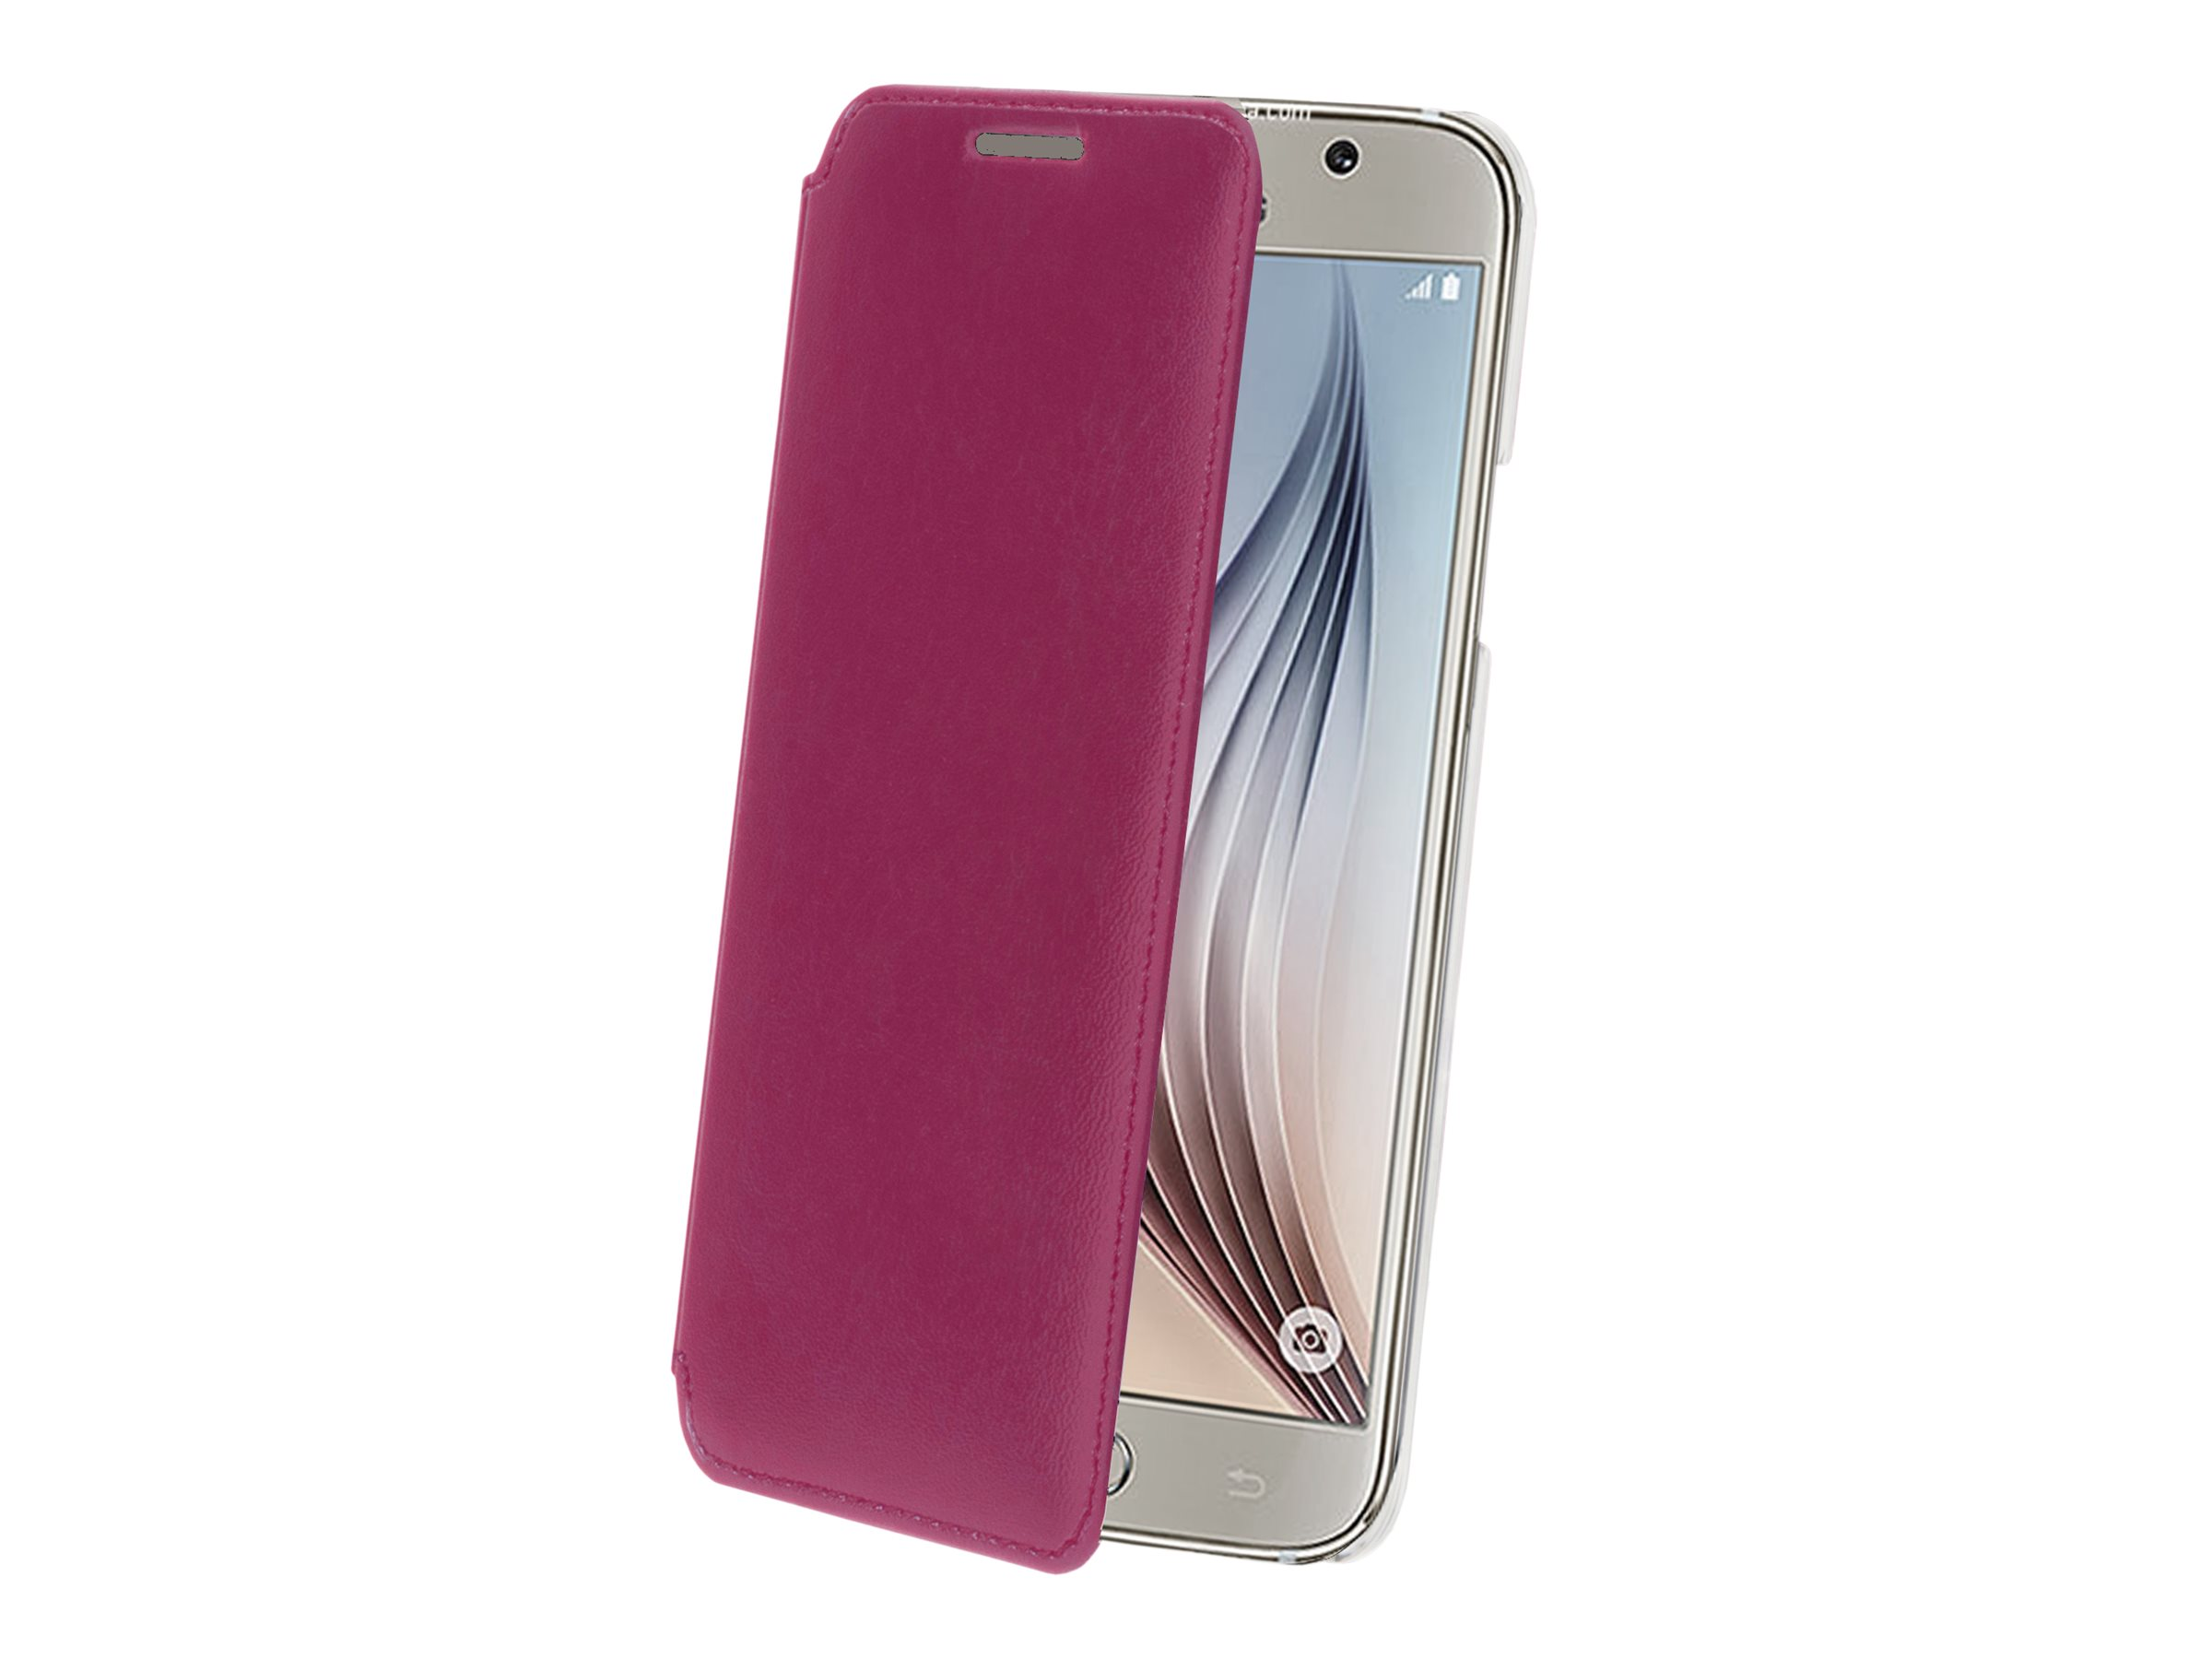 Muvit Made in Paris Crystal Folio - Protection à rabat pour Samsung GALAXY S6 - Fuchsia